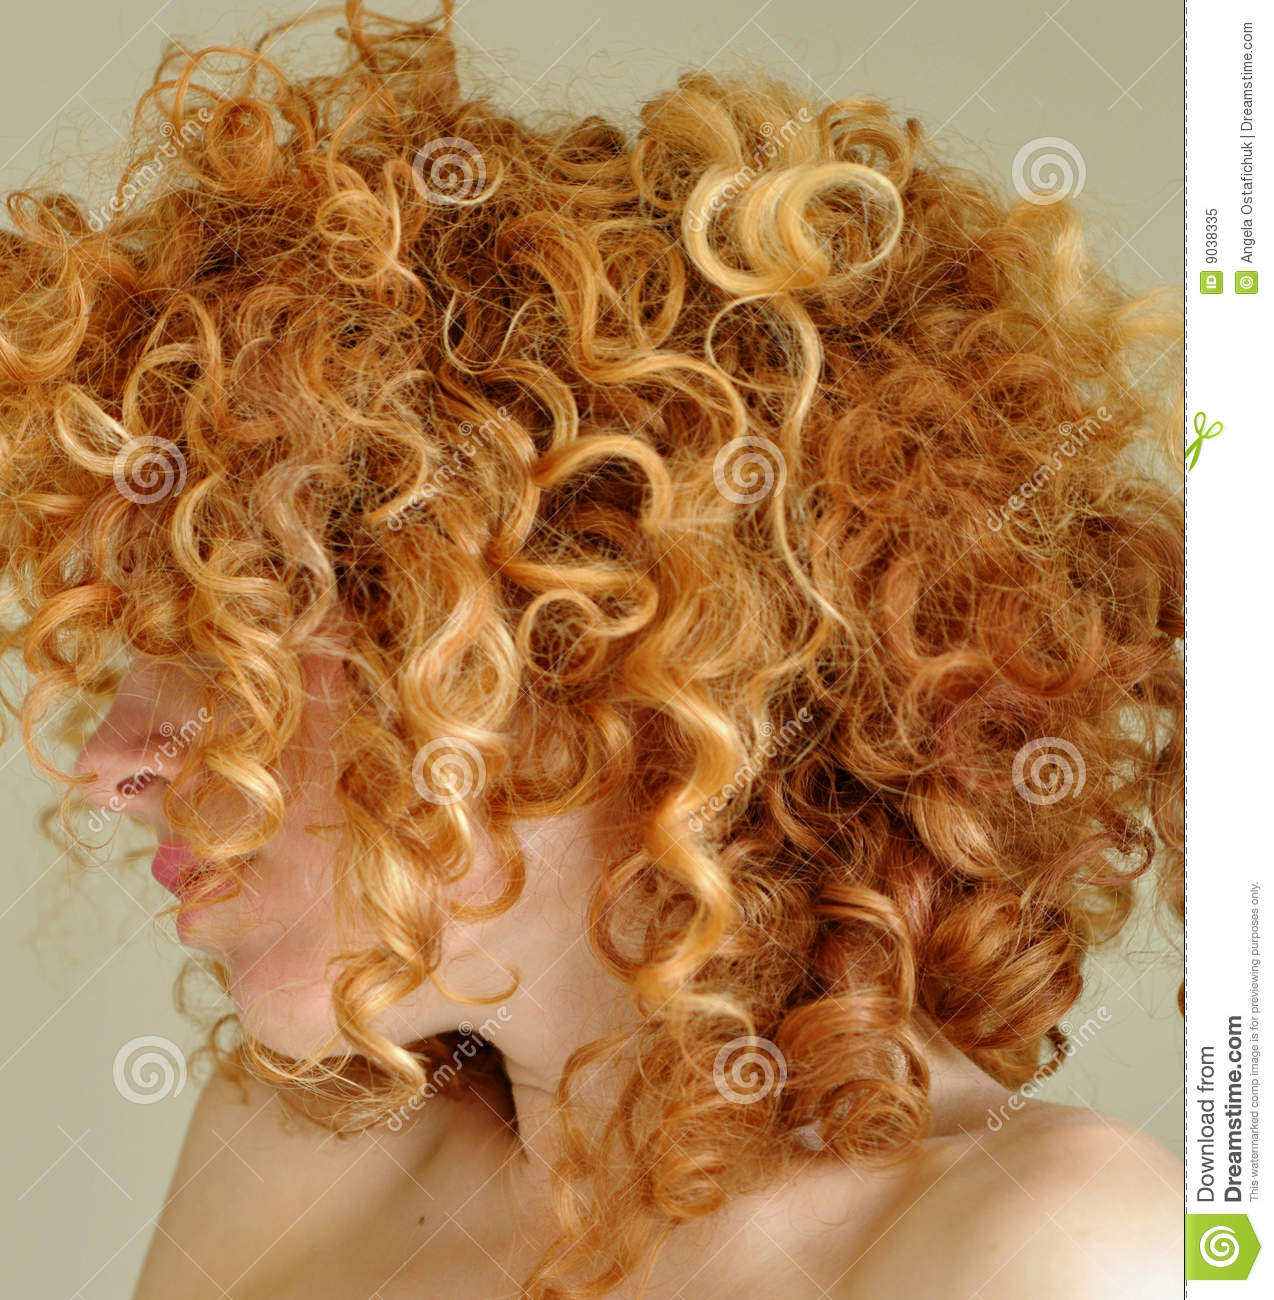 Messy Curly Red Hair Stock Image Image Of Curly